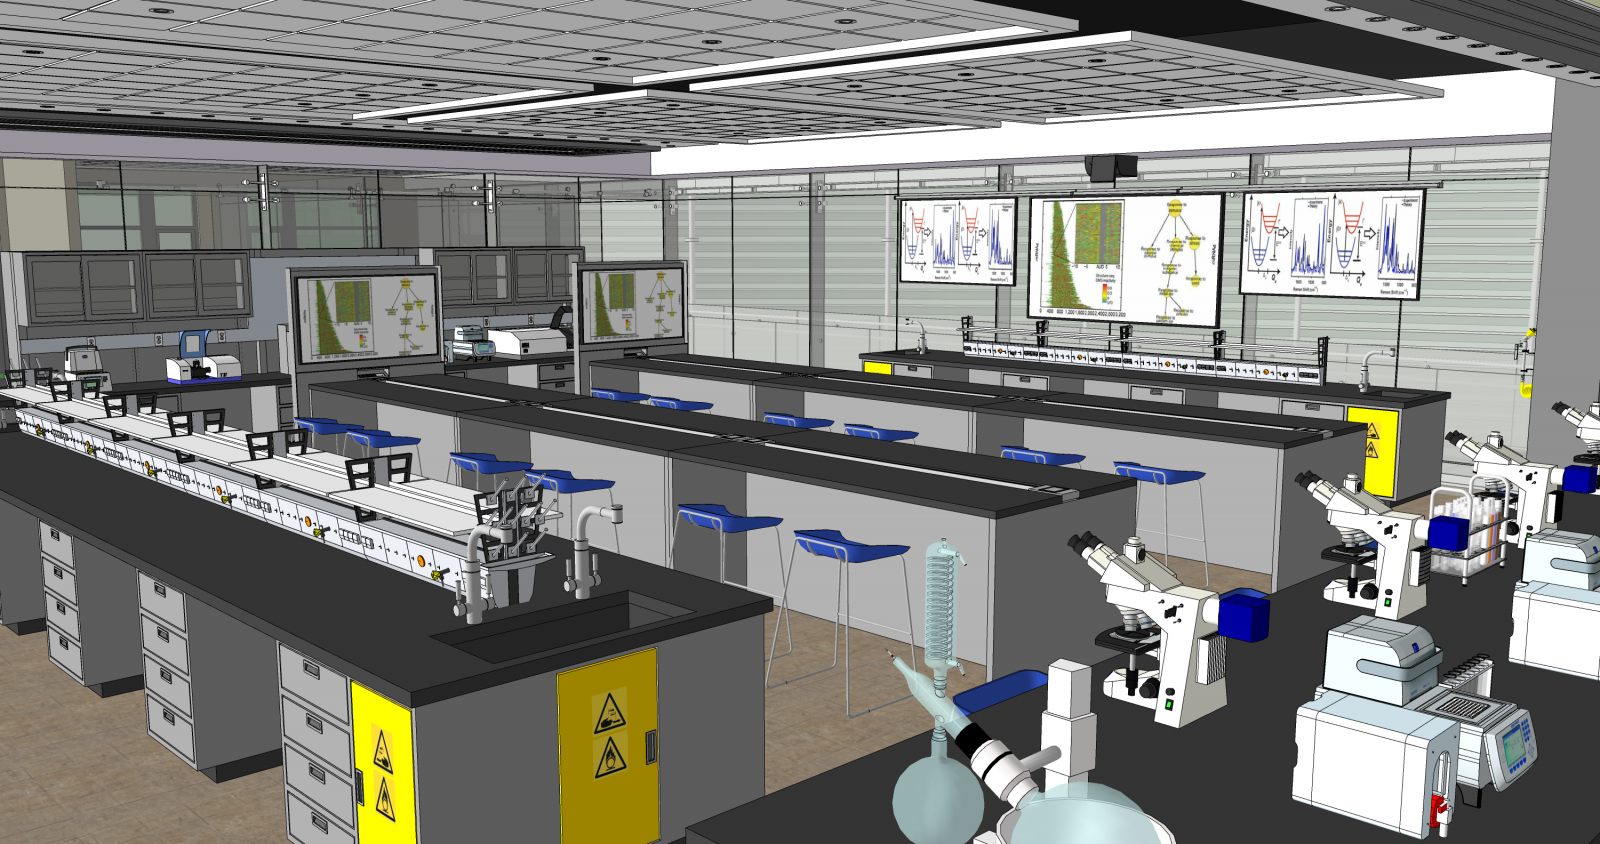 Virtual mockup of a chemistry laboratory that facilitated early decision making with user groups during the design phase.